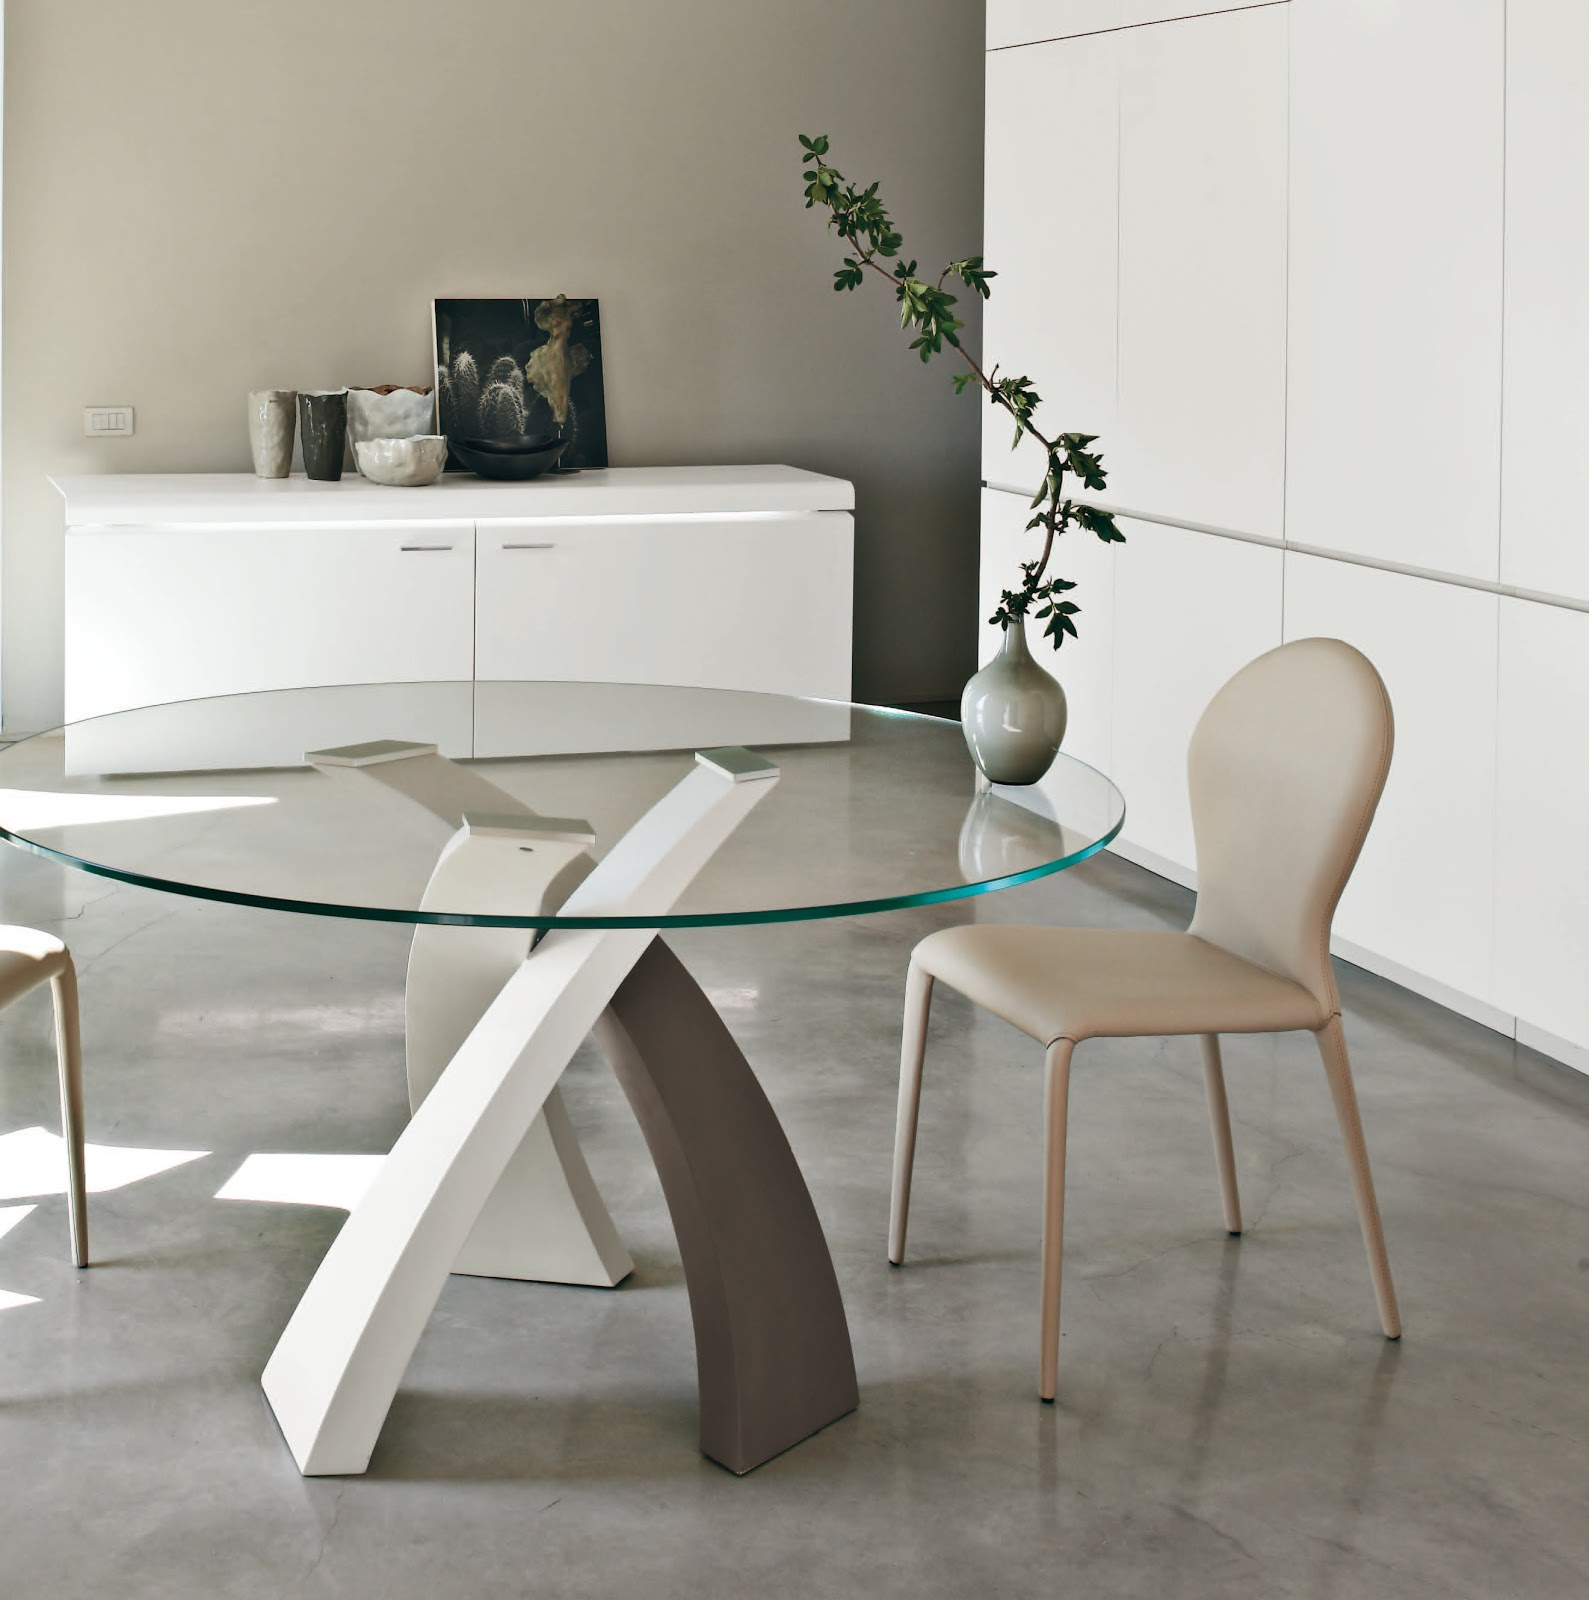 Table ronde verre design - Table basse ronde en verre design ...